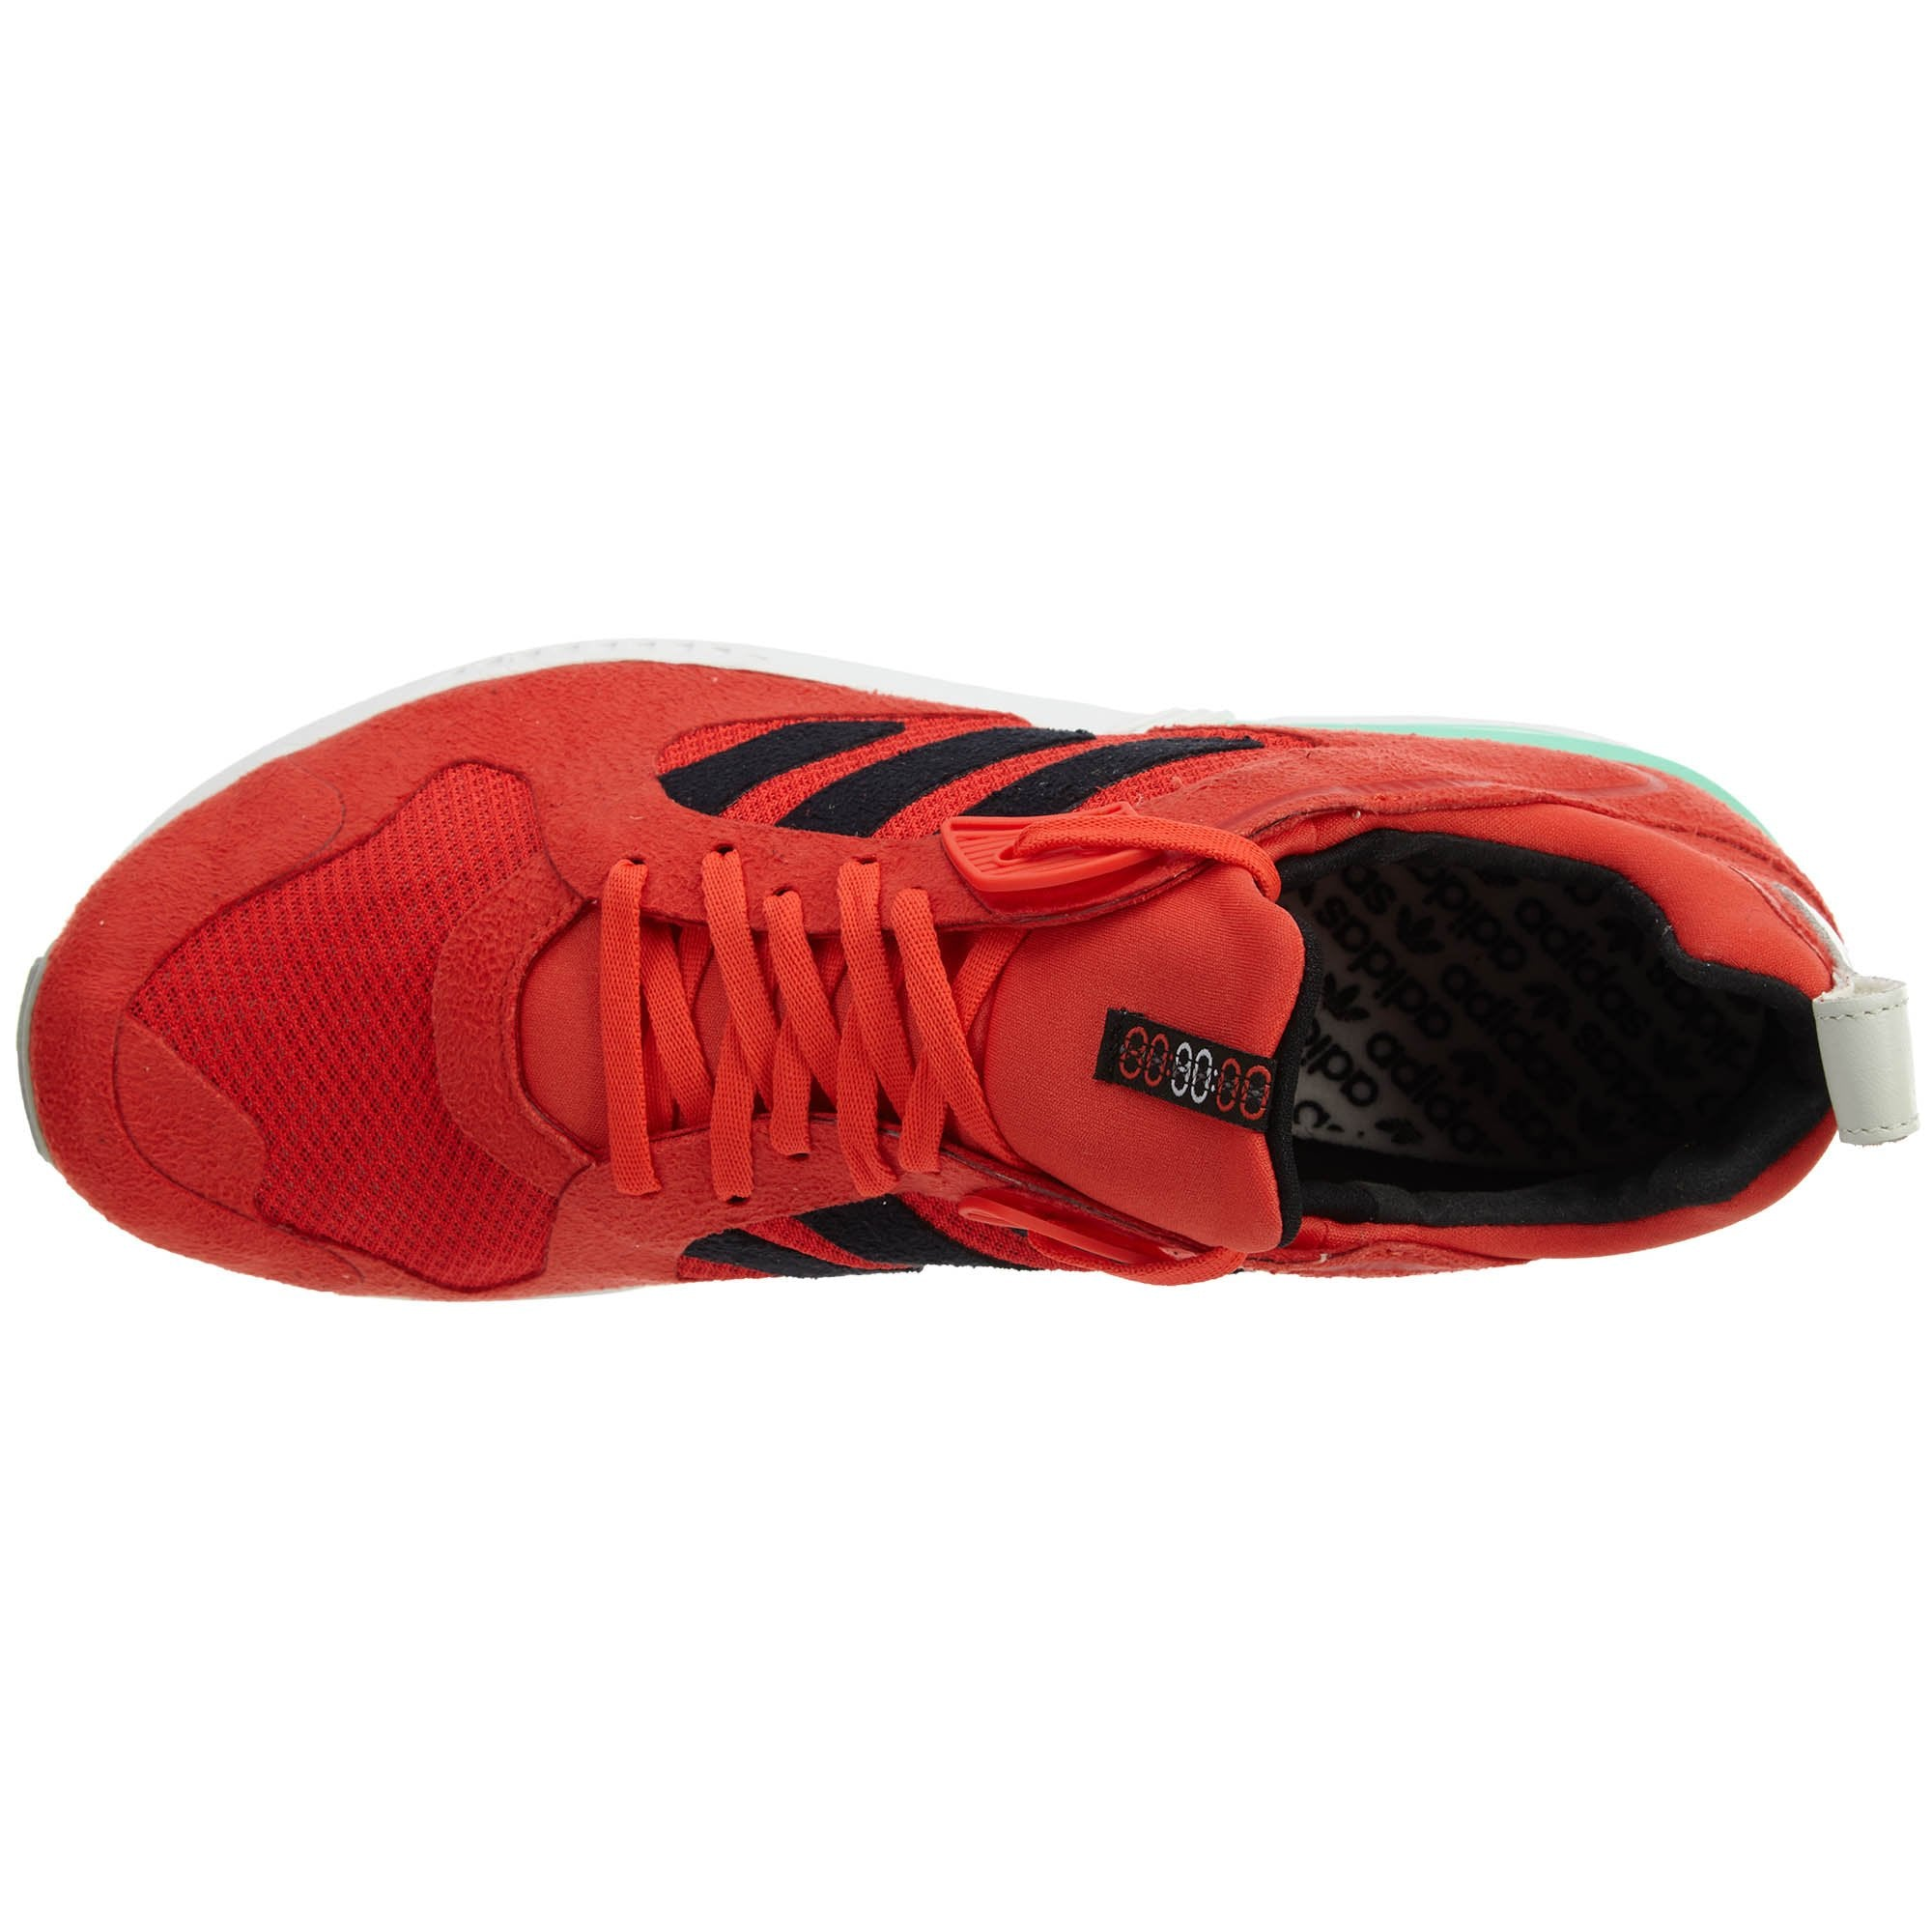 21594bf0ebe8 Adidas Zx5000 Rspn 80/90/00 Mens Style : D67351 – qqarbon